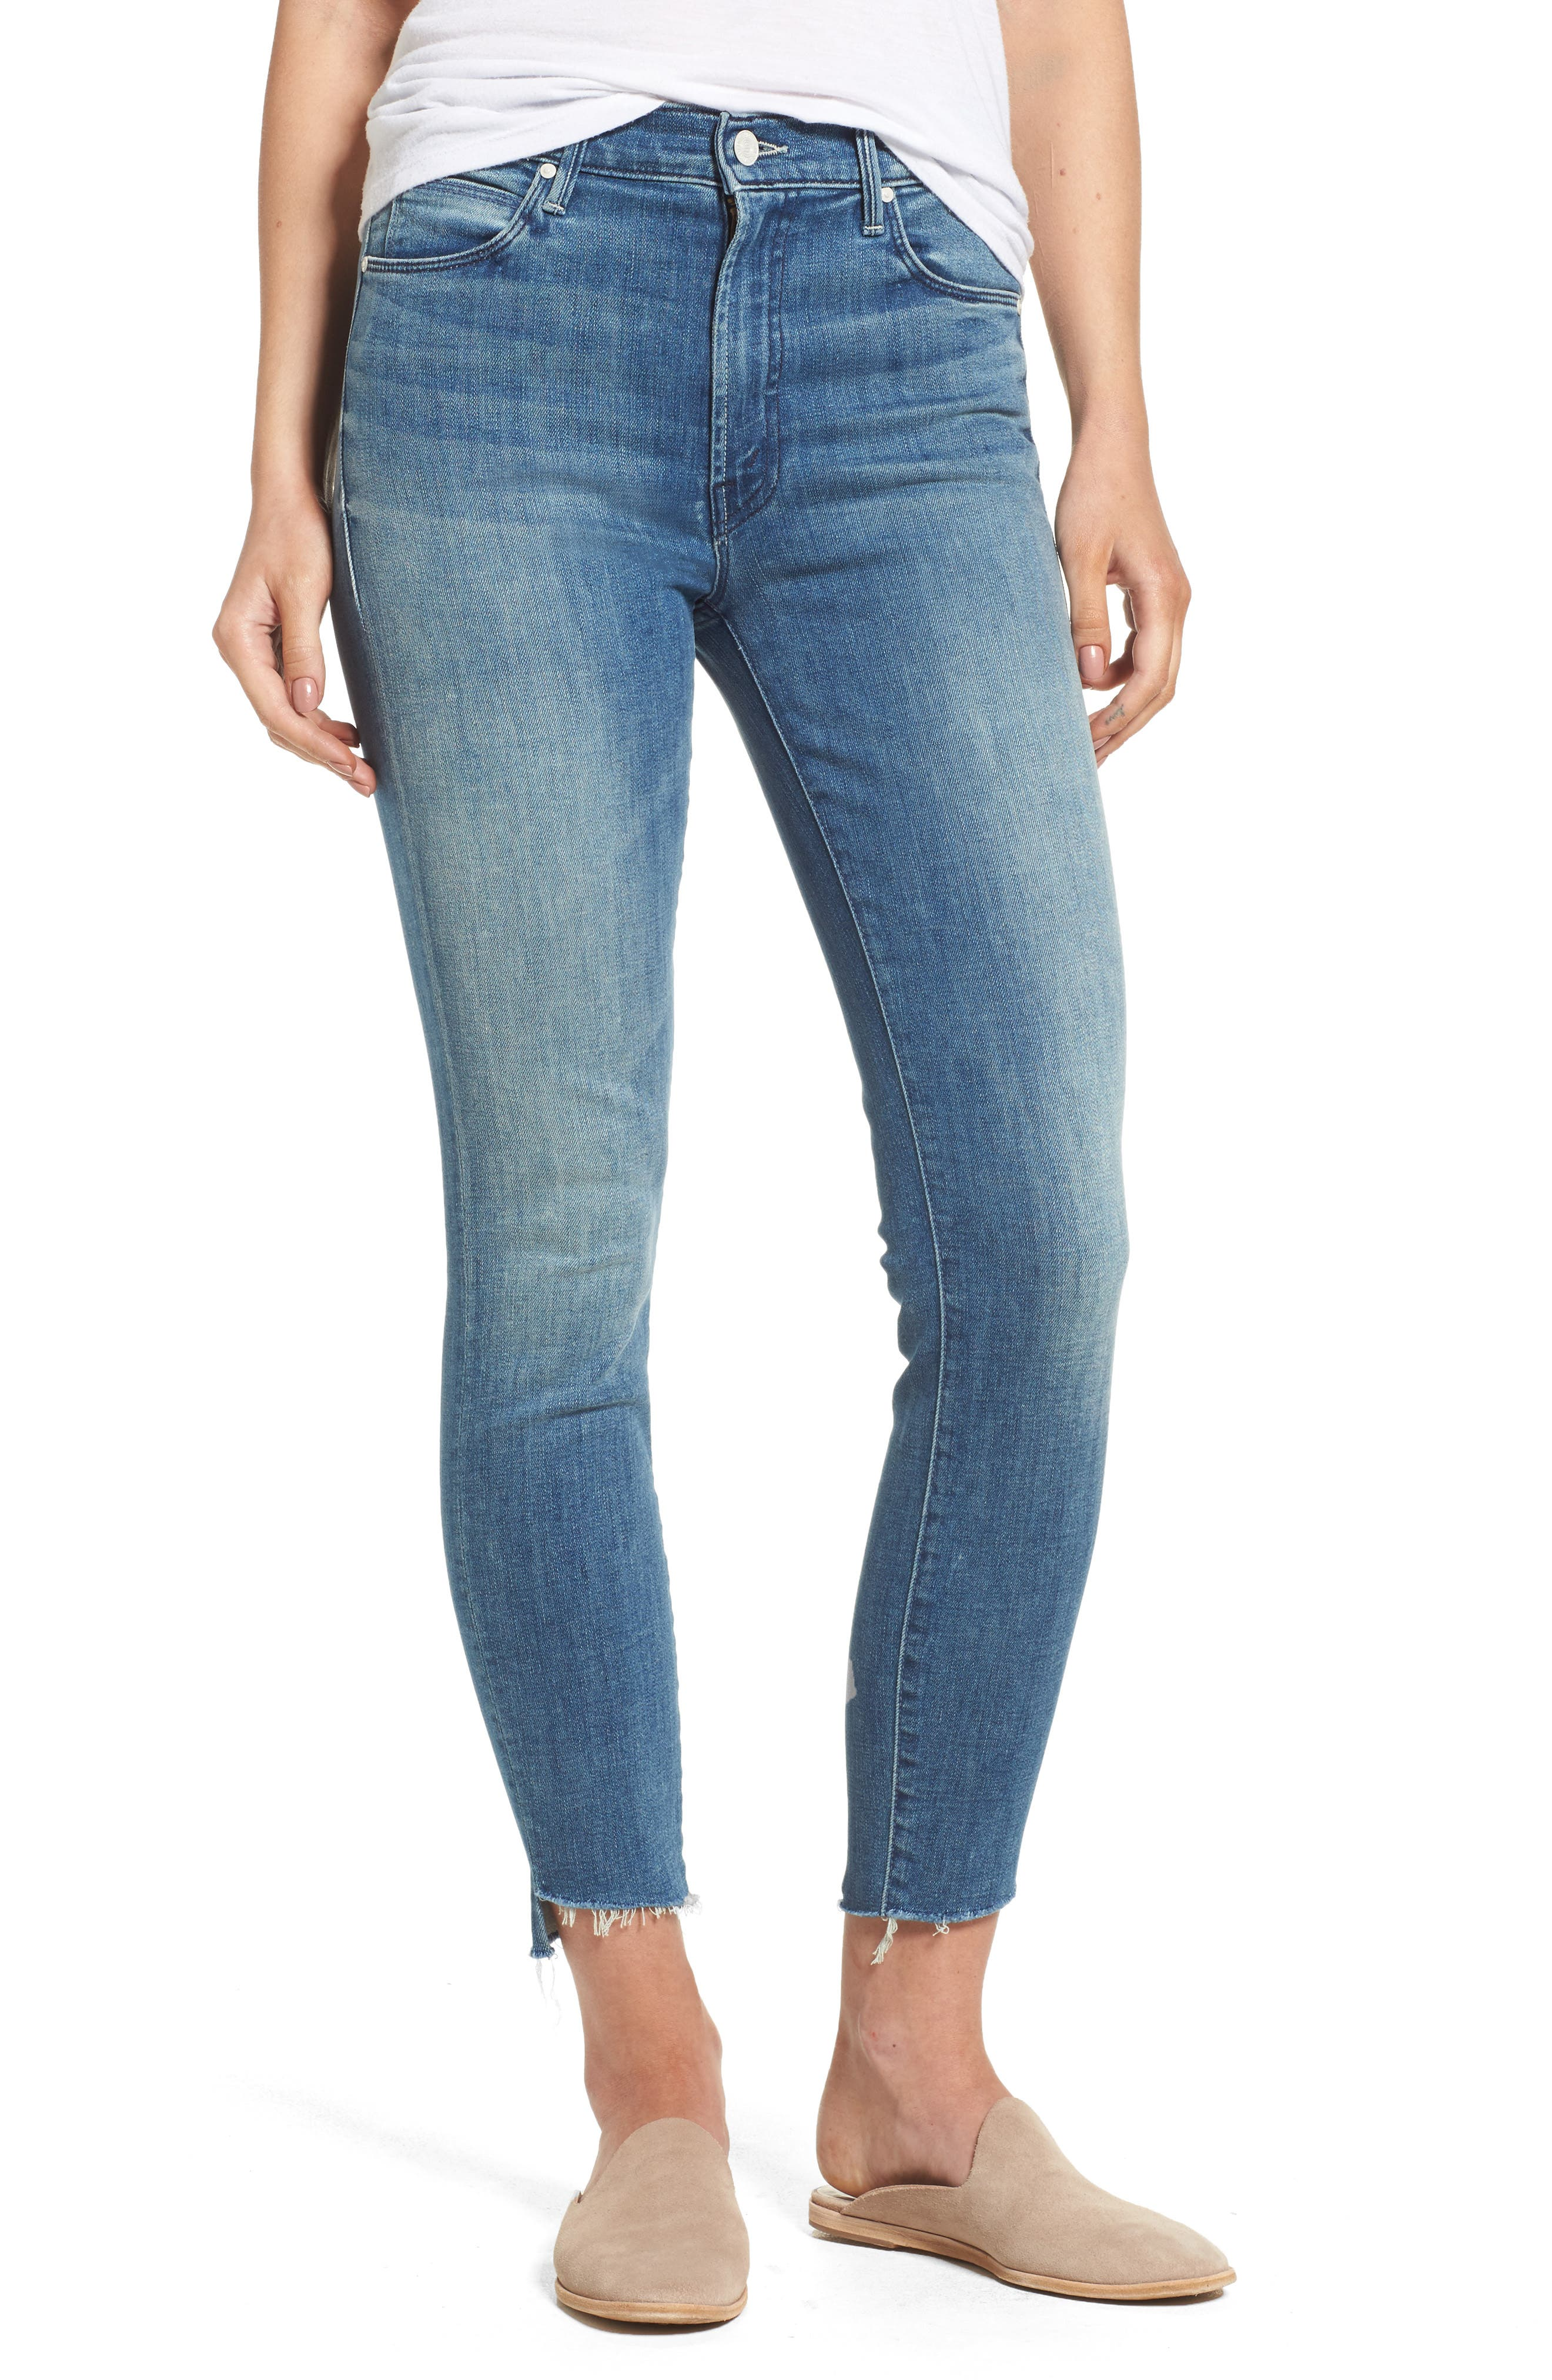 Main Image - MOTHER The Stunner High Rise Ankle Fray Jeans (Good Girls Do)